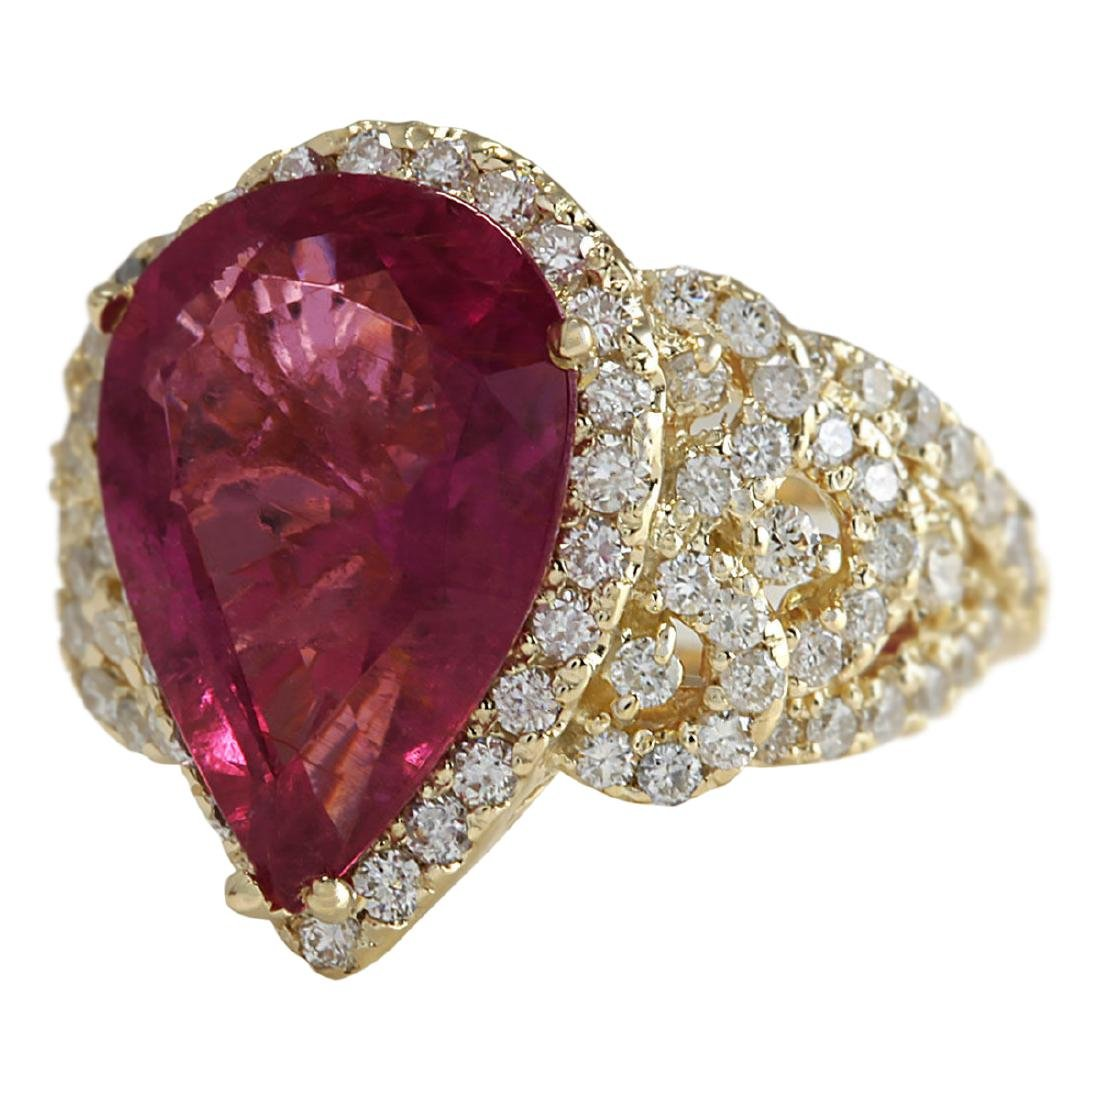 8.27 CTW Natural Rubelite And Diamond Ring 18K Solid - 2